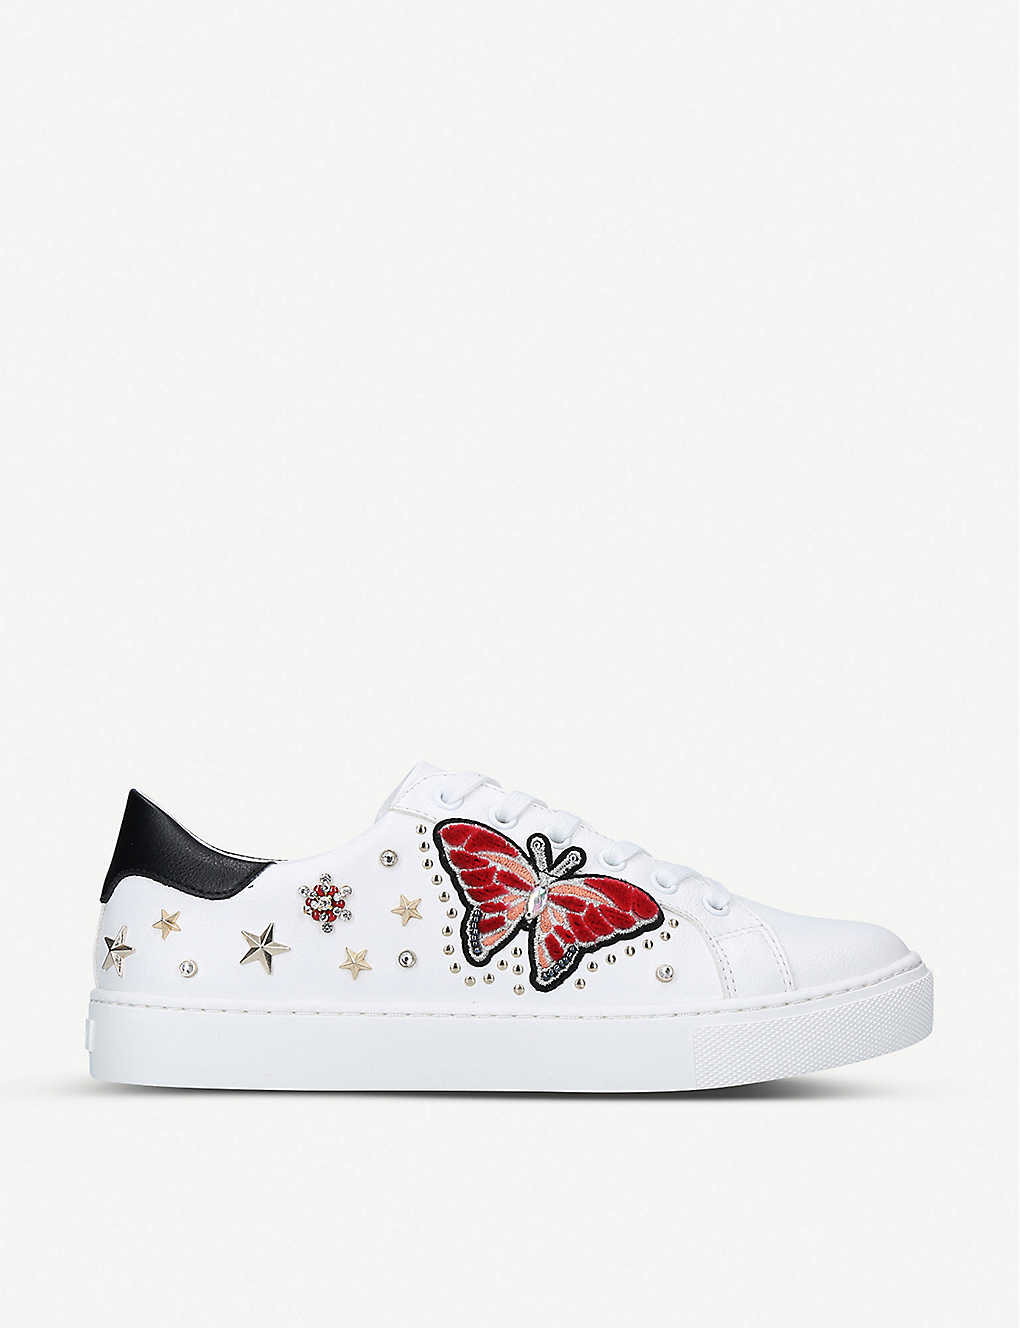 ALDO: Mariposa embellished leather trainers